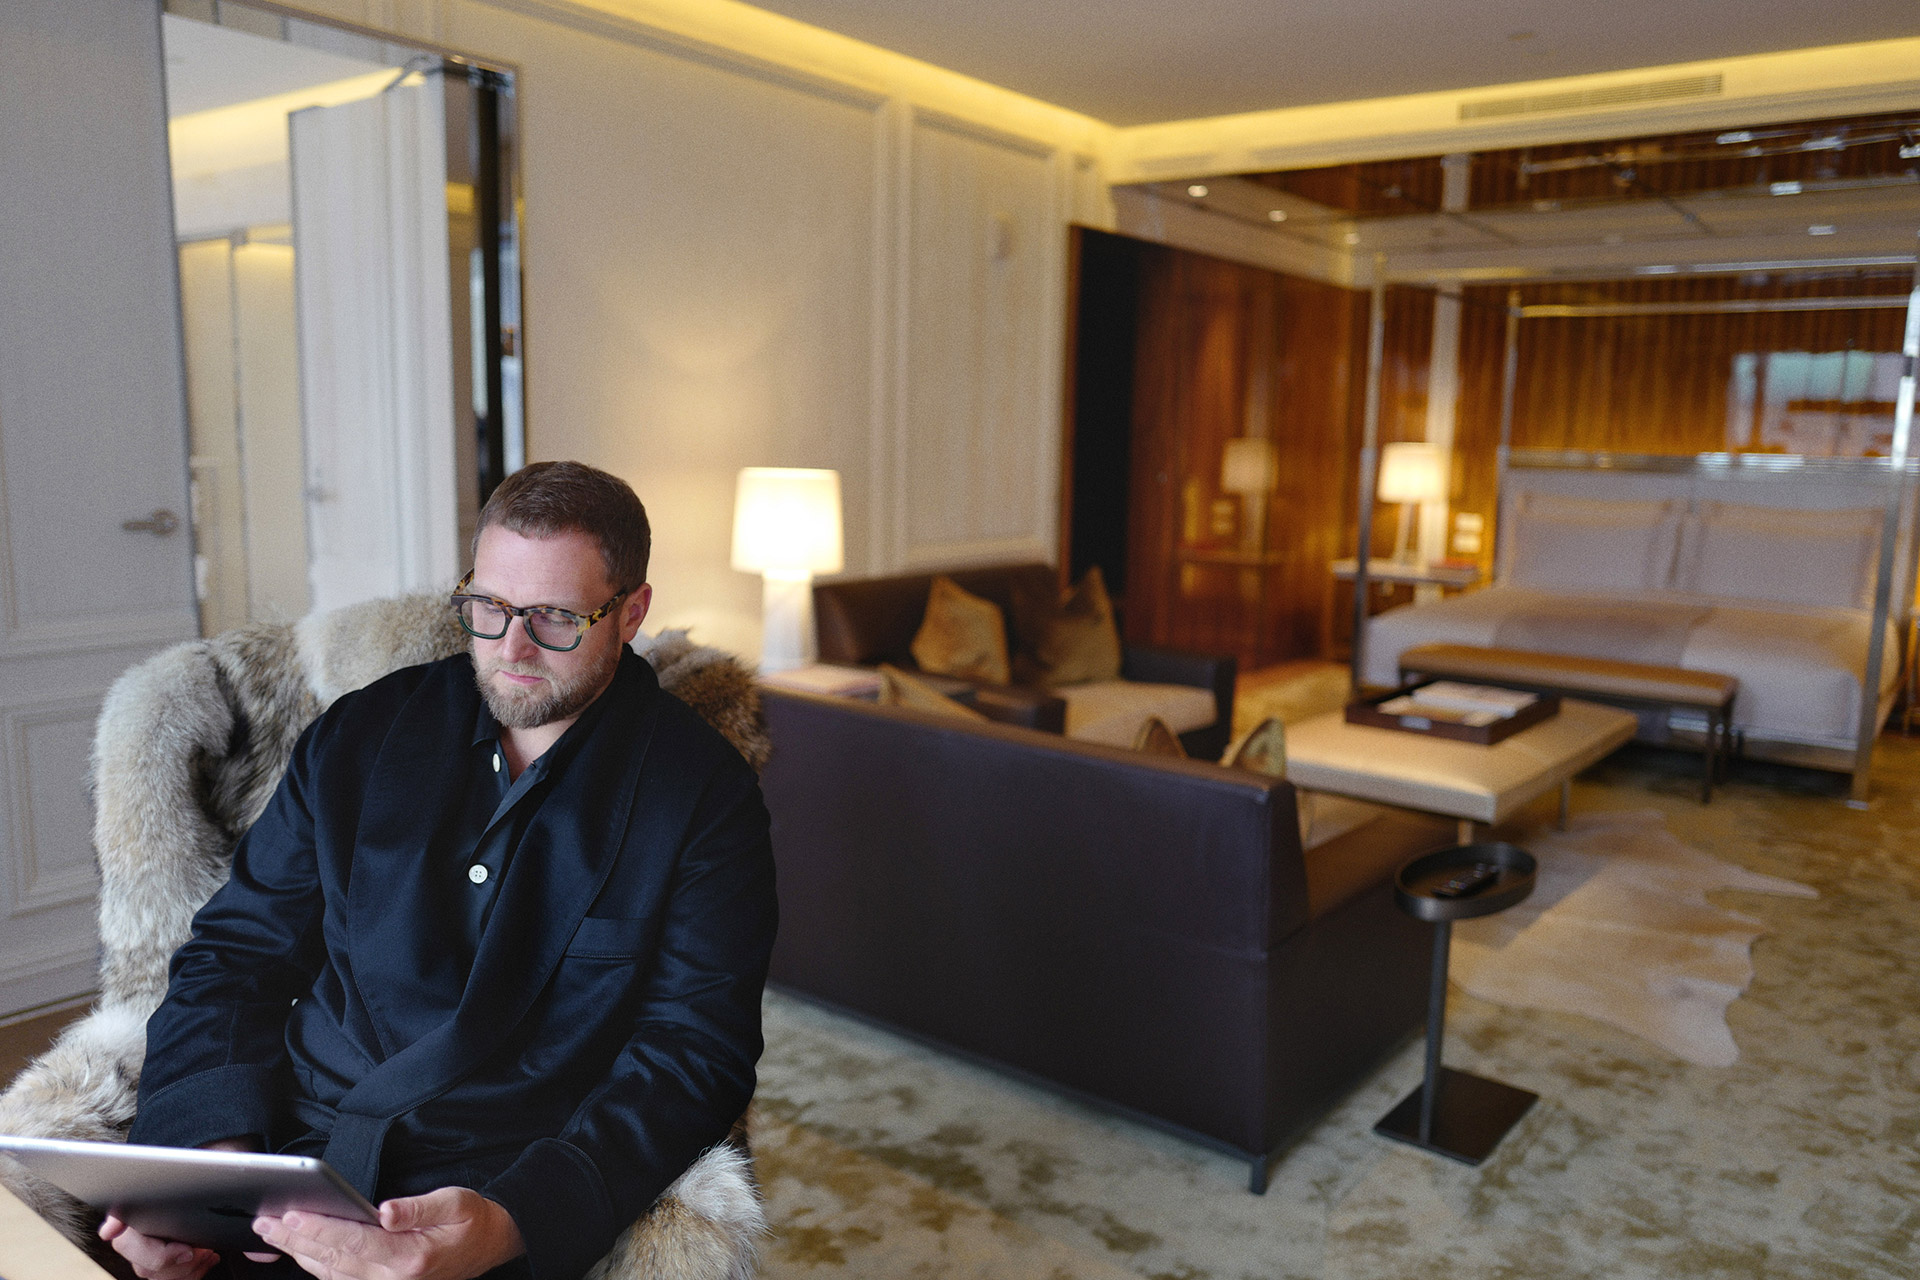 Christopher R King in the Presidential Suite Bedroom Baccarat Hotel New York City